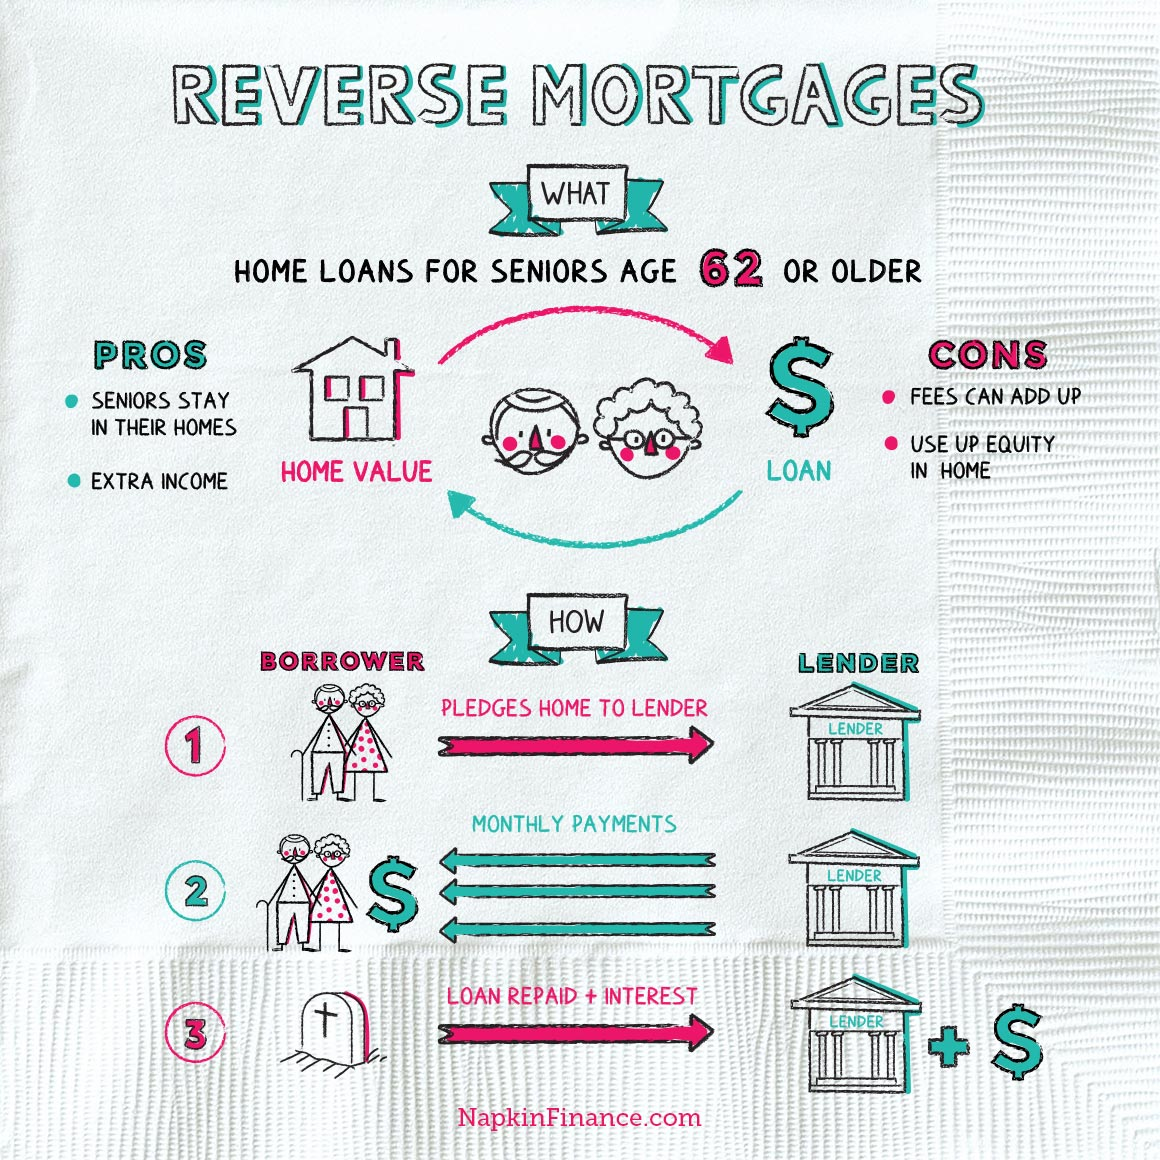 NapkinFinance-ReverseMortgages-Napkin-05-22-19-v02